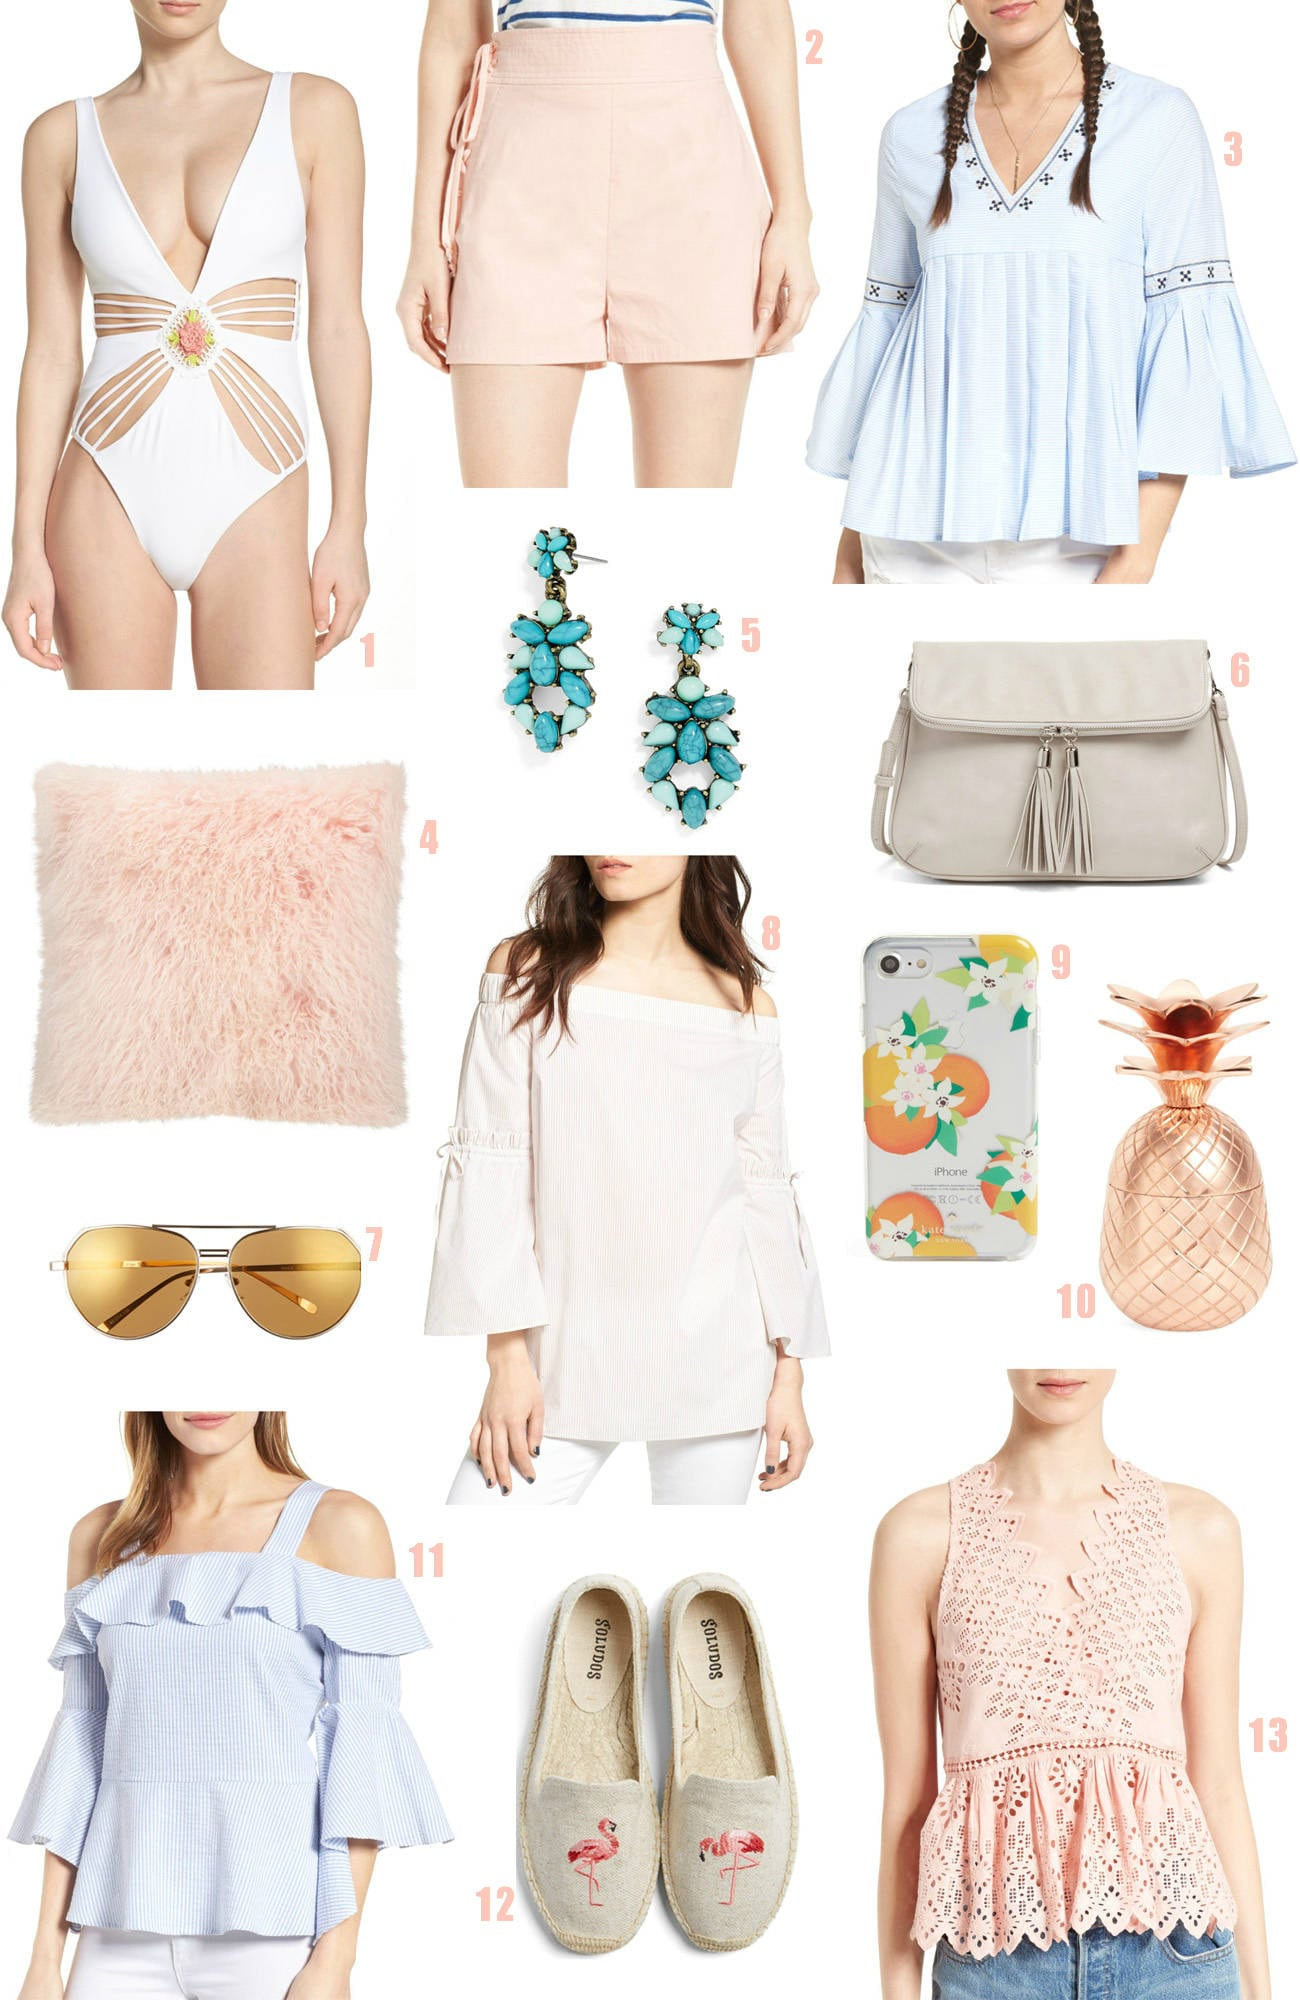 Nordstrom half yearly sale  |Mash Elle beauty blogger | bell sleeves |  pink pillow flamingo | flats | lace shirt | swimwear